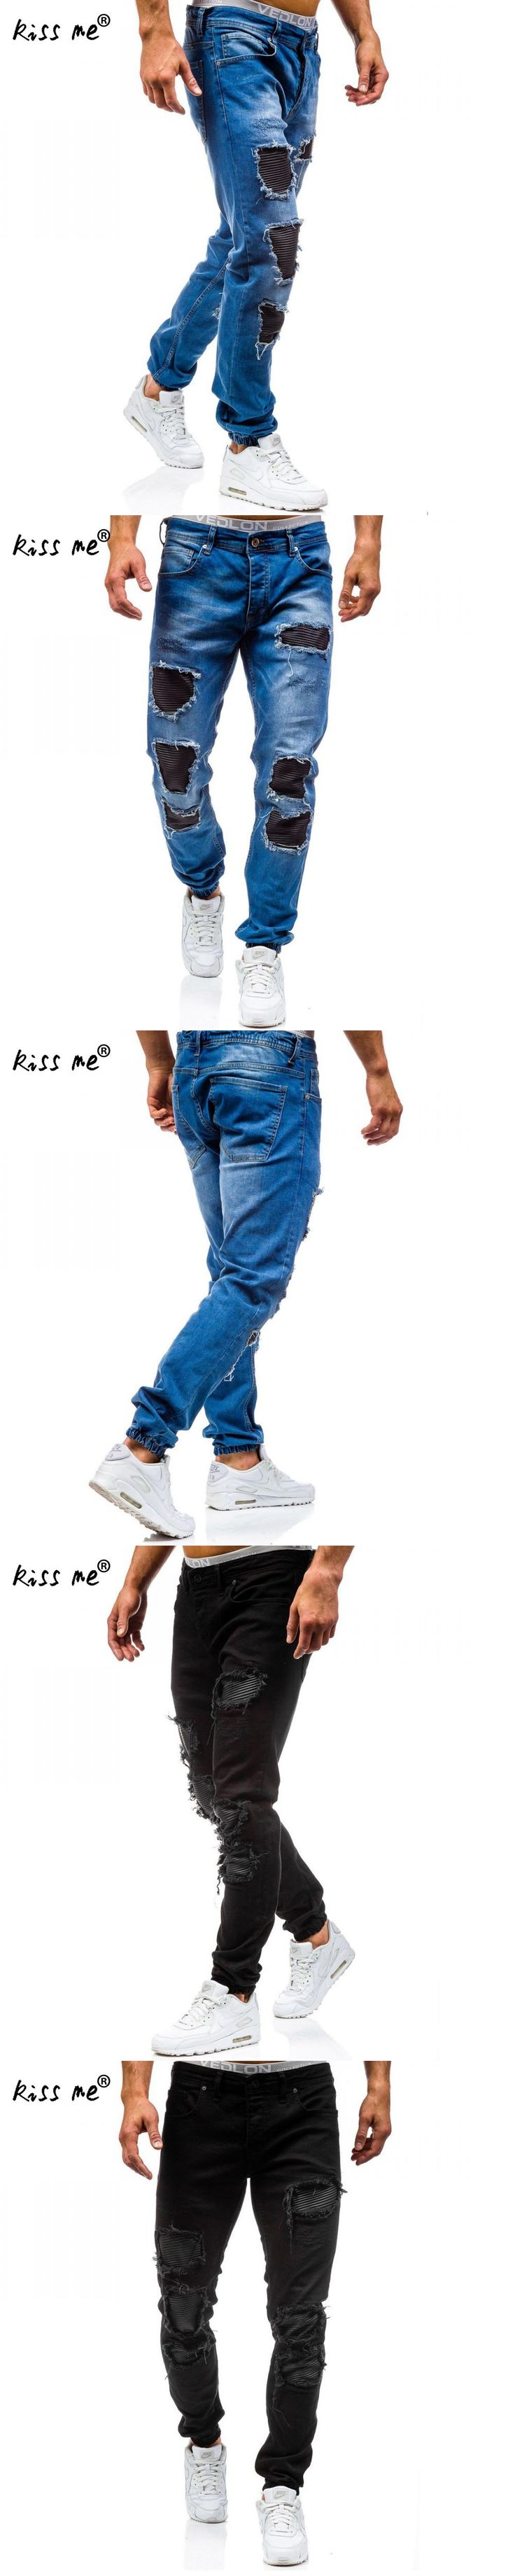 Famous Brand Slim Fit Ripped Jeans Men Hi-Street Mens Distressed Denim Joggers Knee Holes Washed Destroyed Jeans